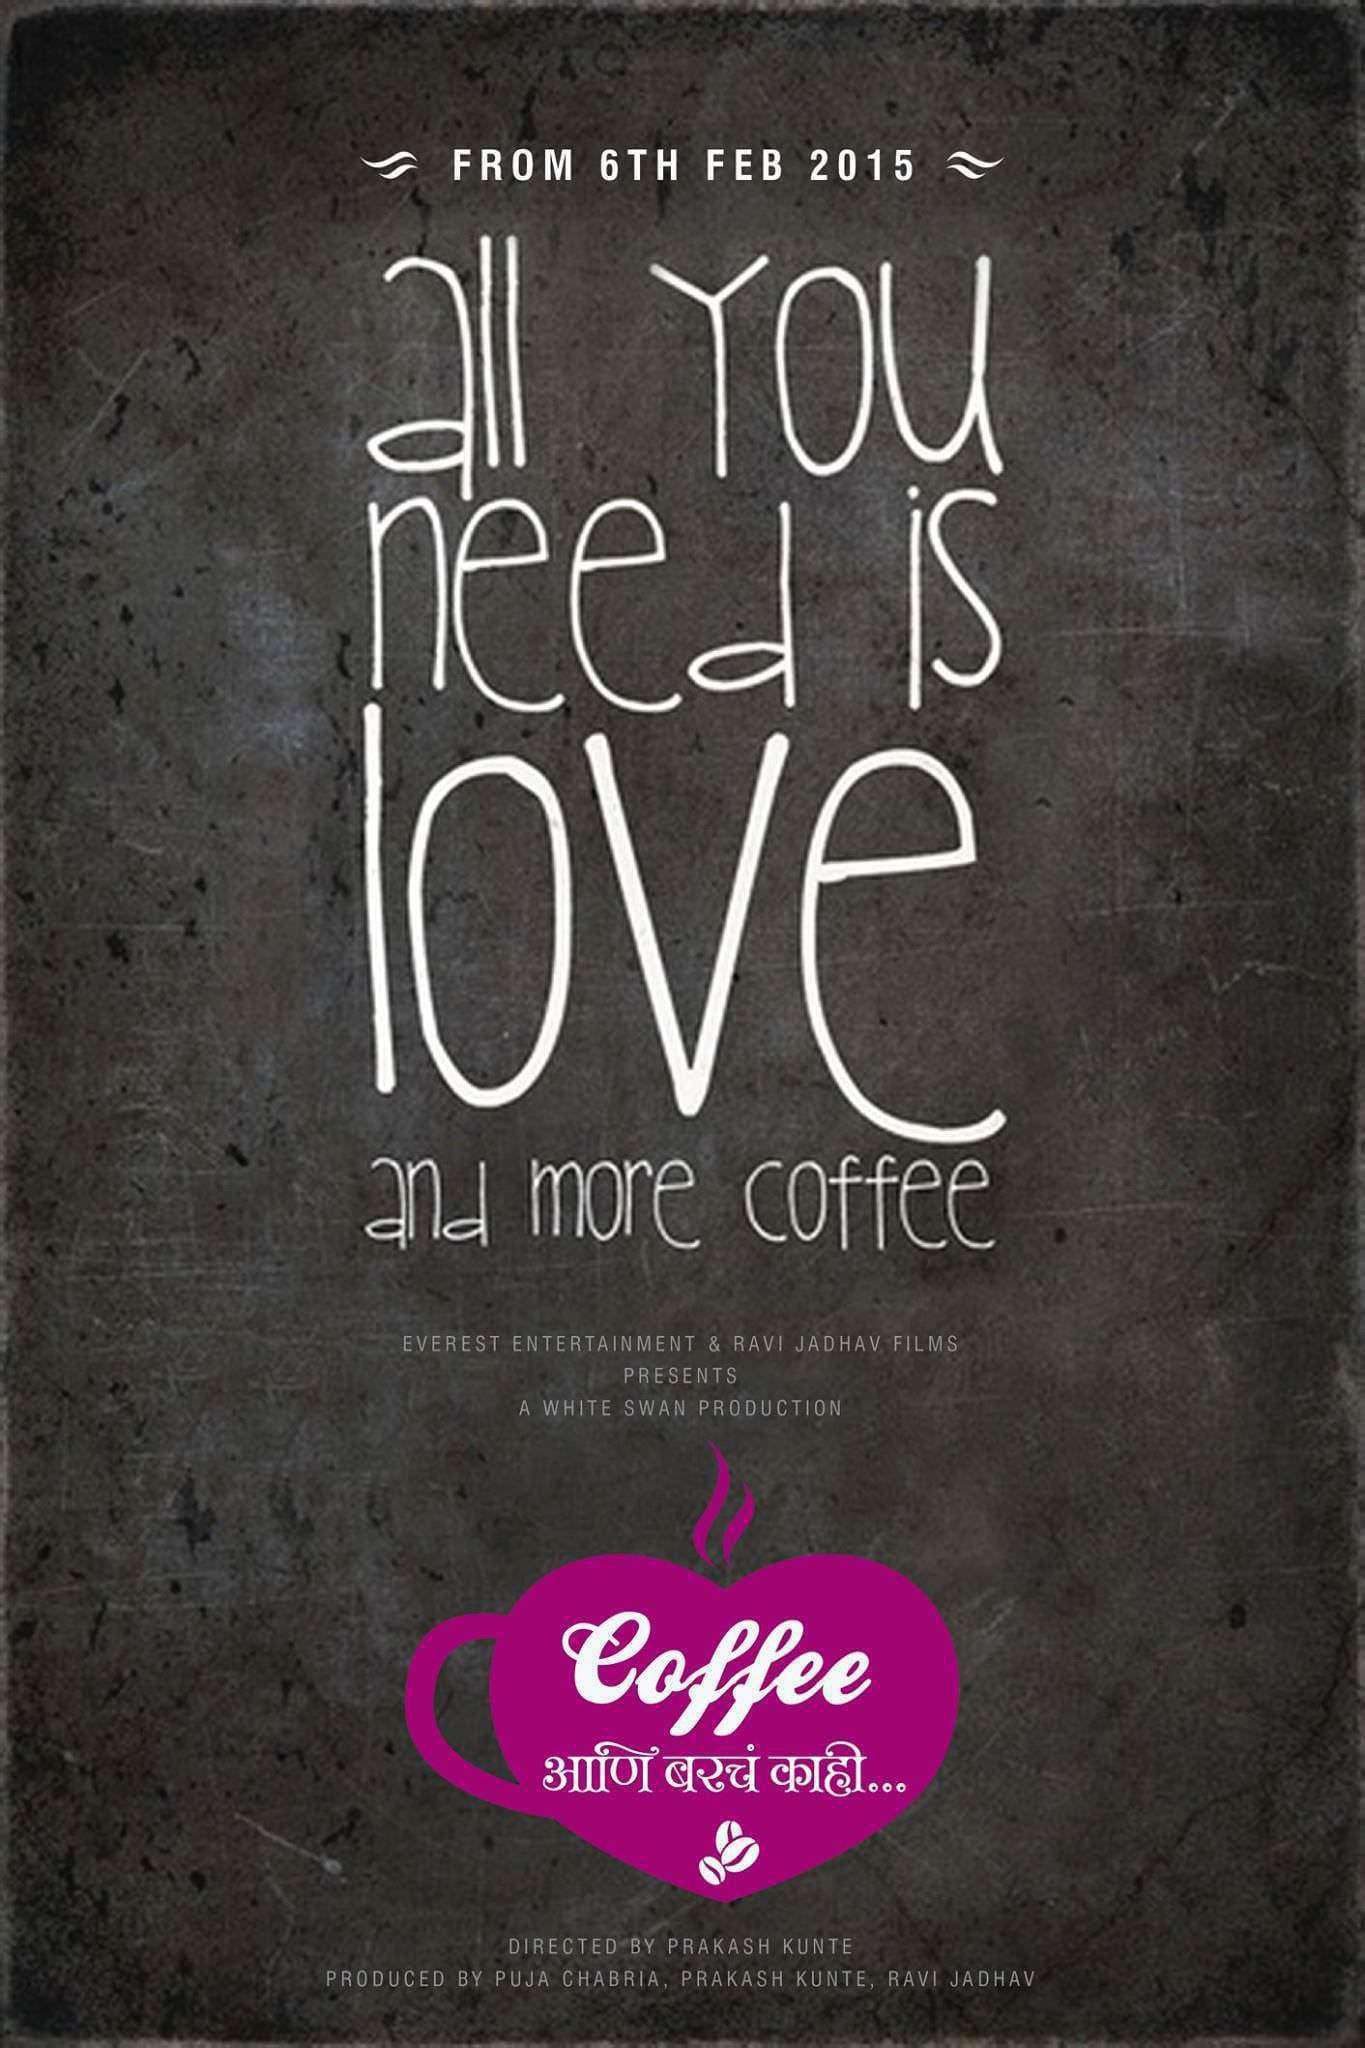 Coffee and Lots more